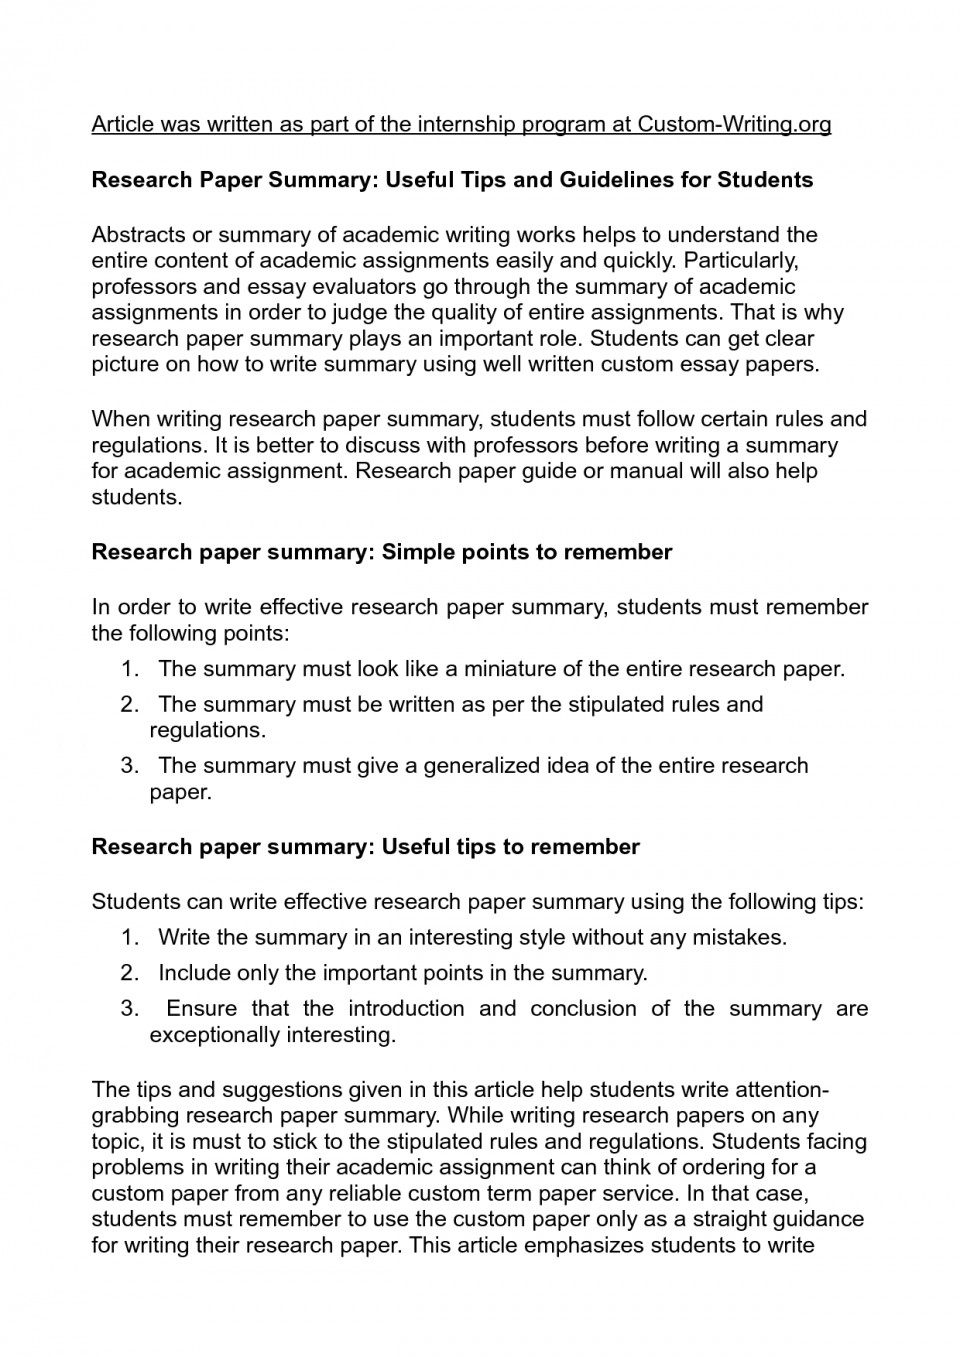 006 Essay Example Adhd Research Papers Brain Scan College About Writing Paper Summary 5 Impressive Argumentative Topics 960